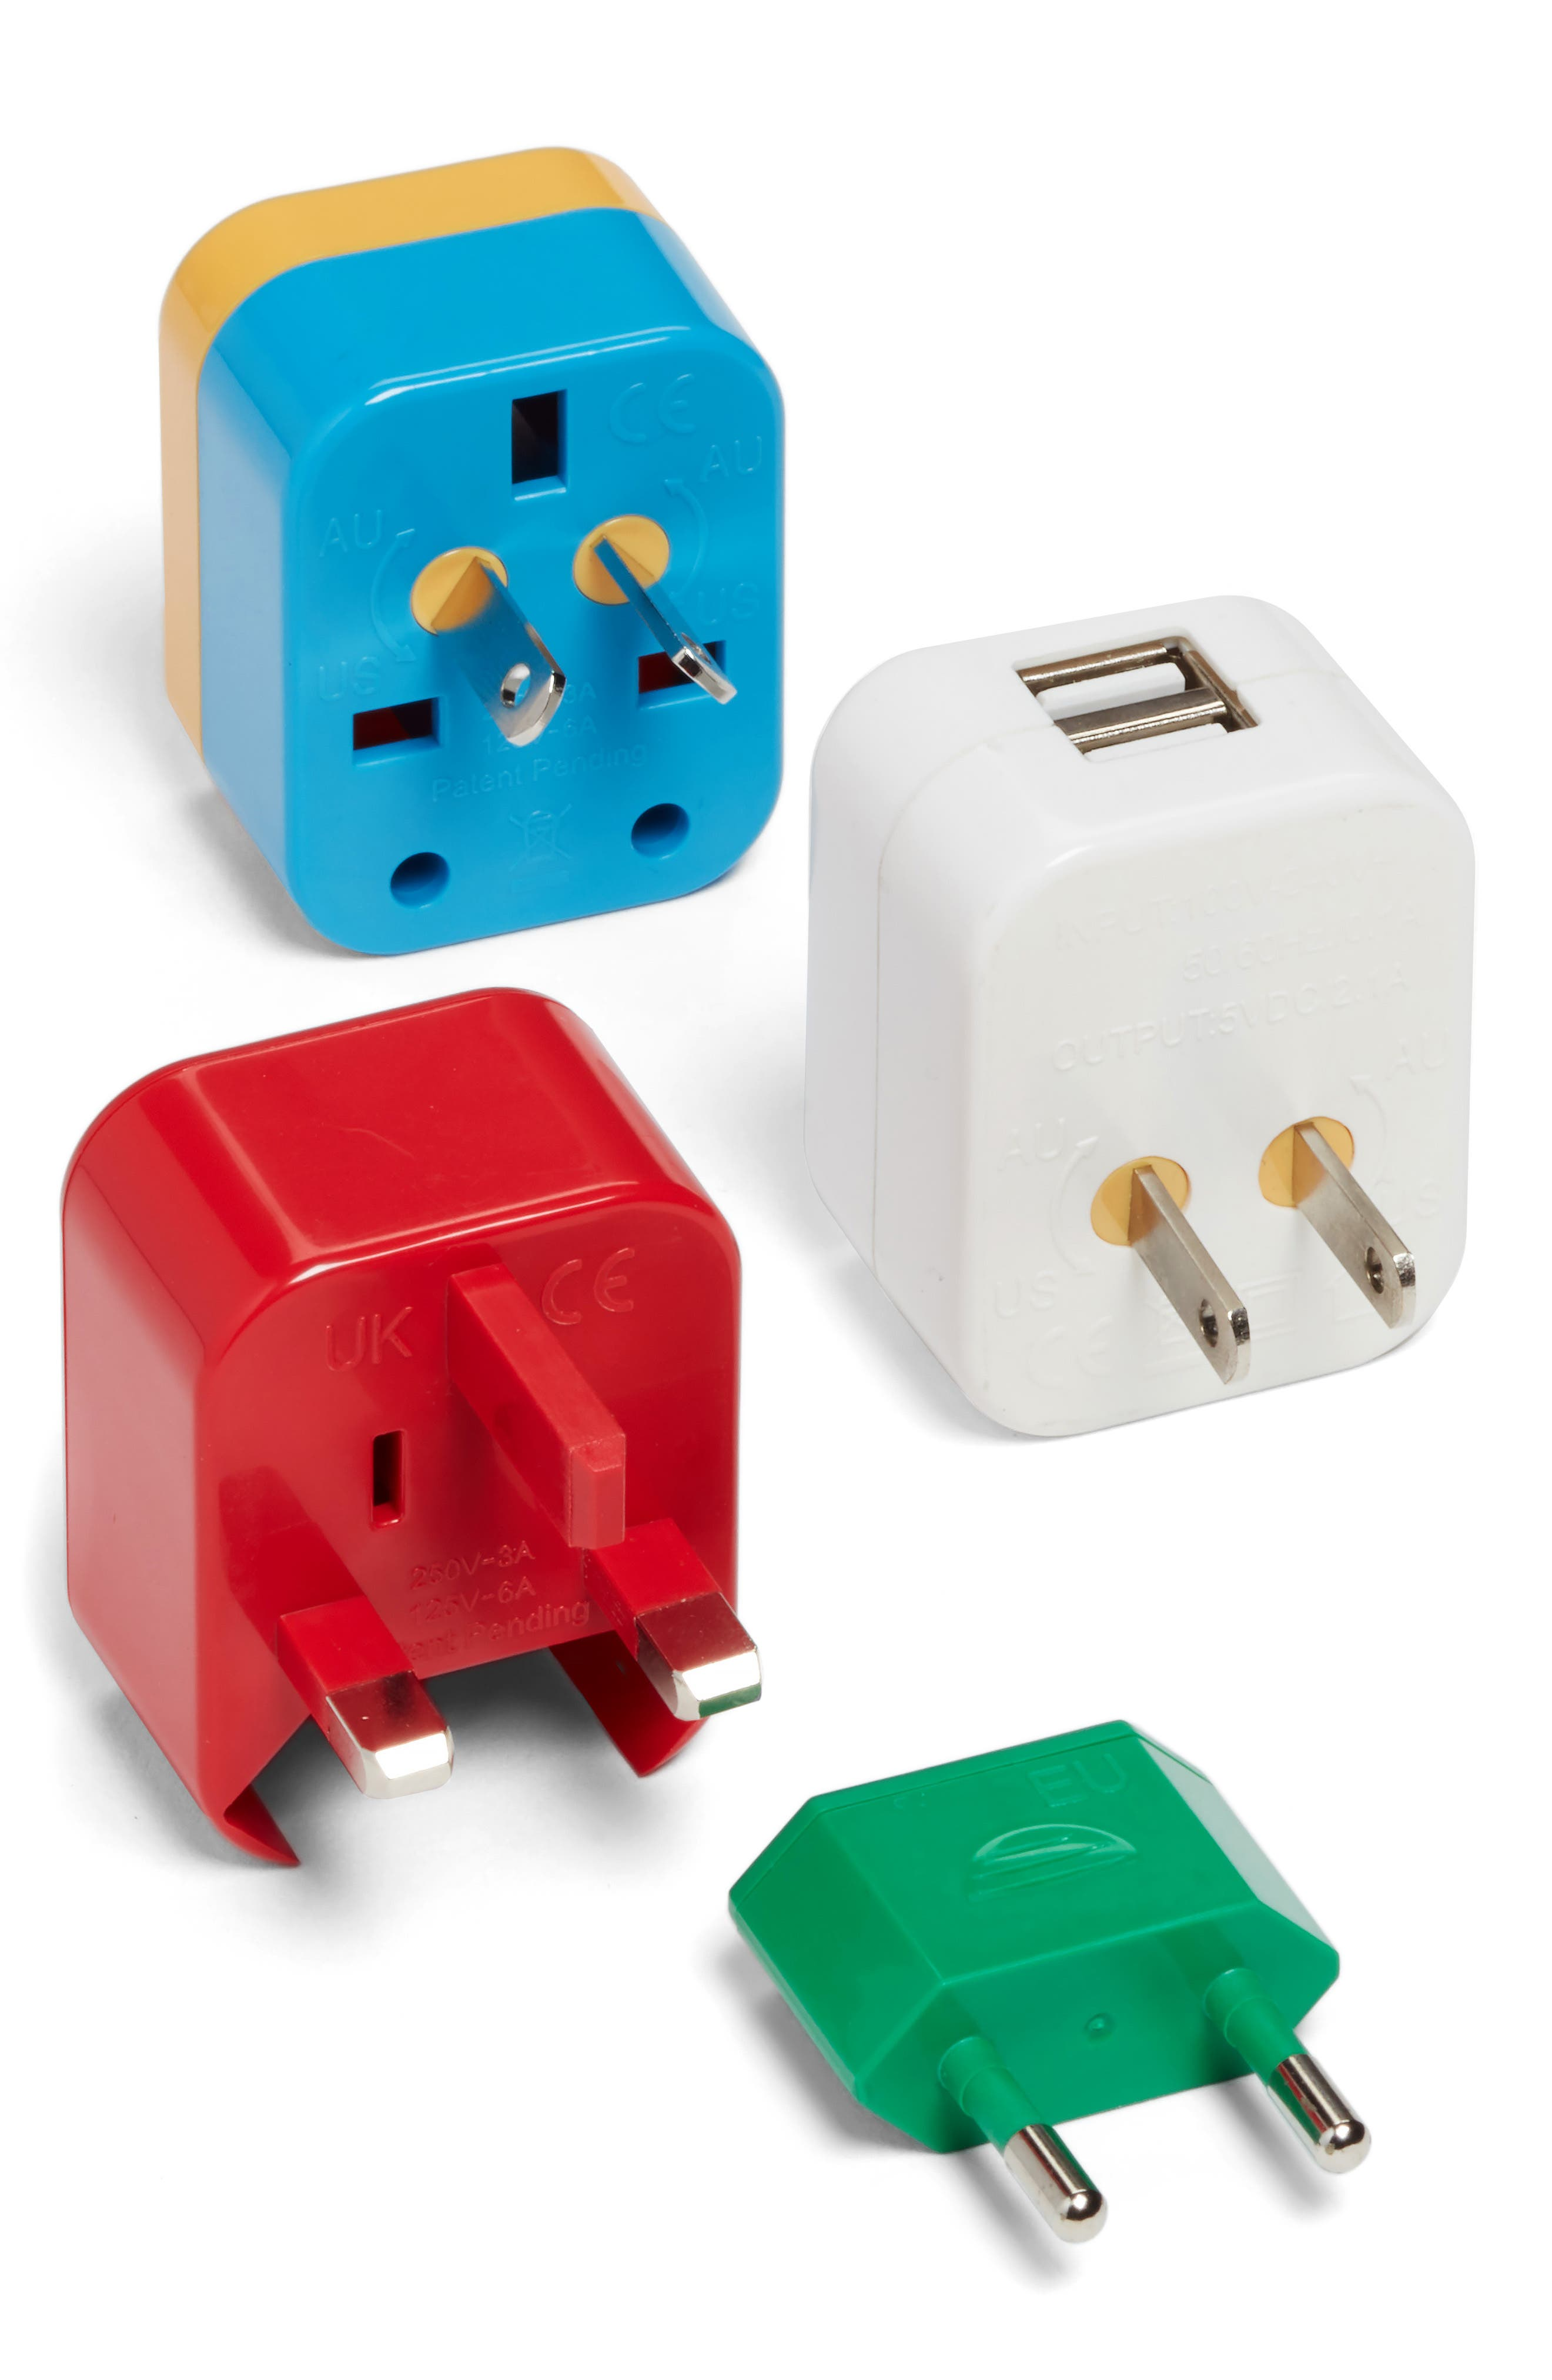 5-in-1 Universal Travel Adapter,                             Alternate thumbnail 2, color,                             600